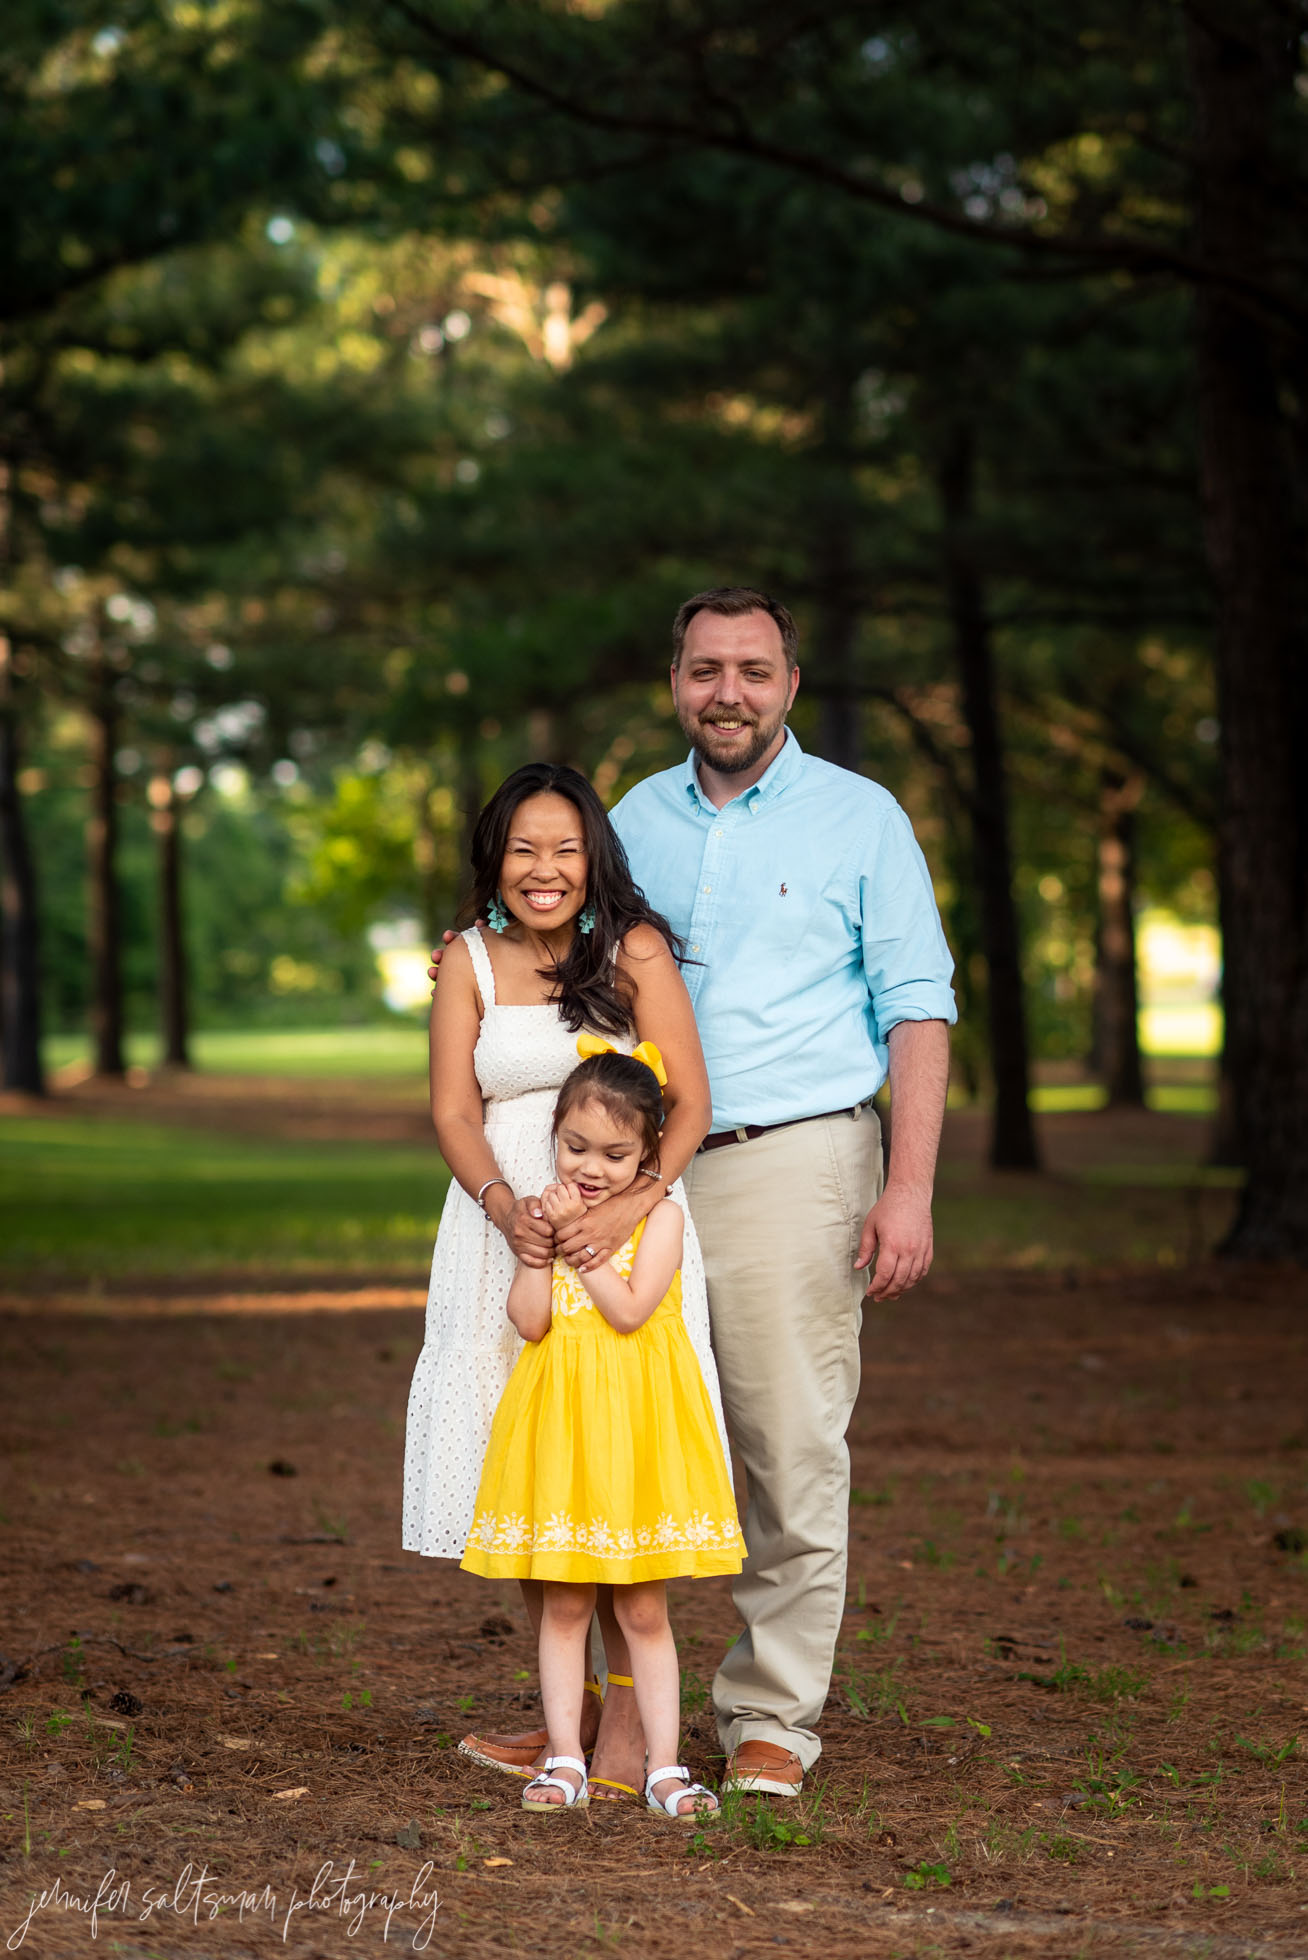 Collierville Family Photographer